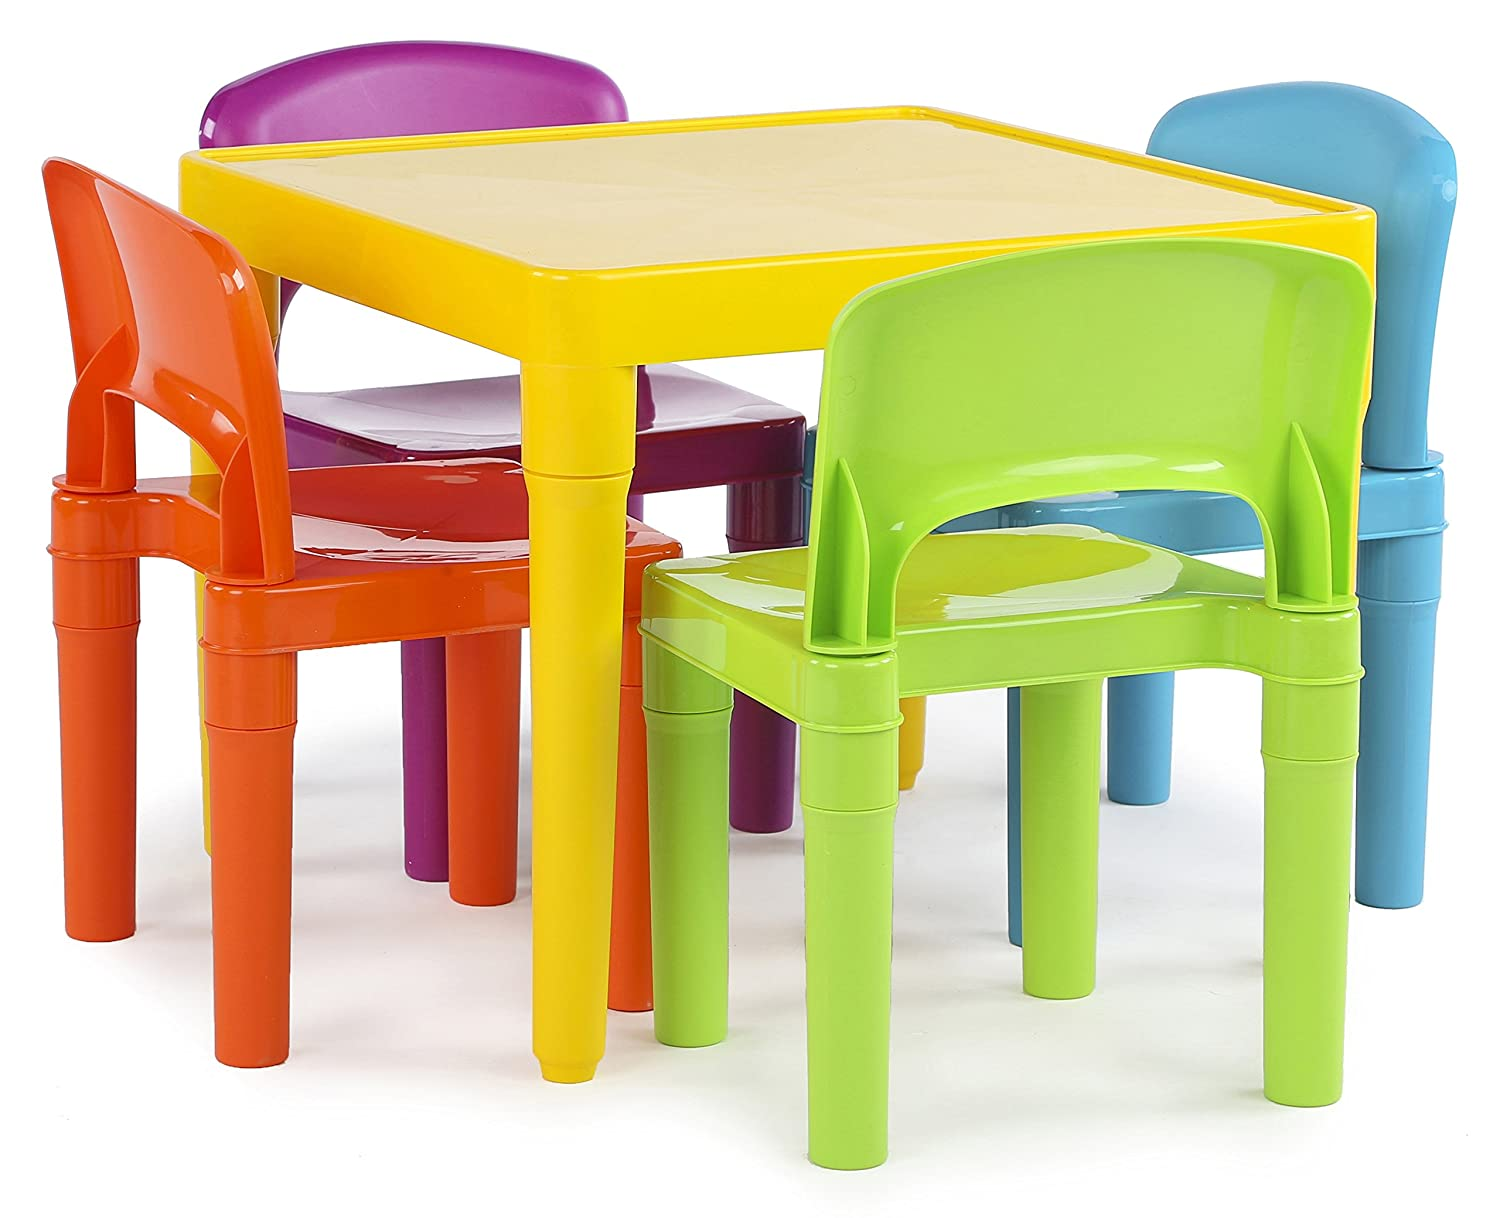 Amazoncom Tot Tutors Kids Plastic Table and